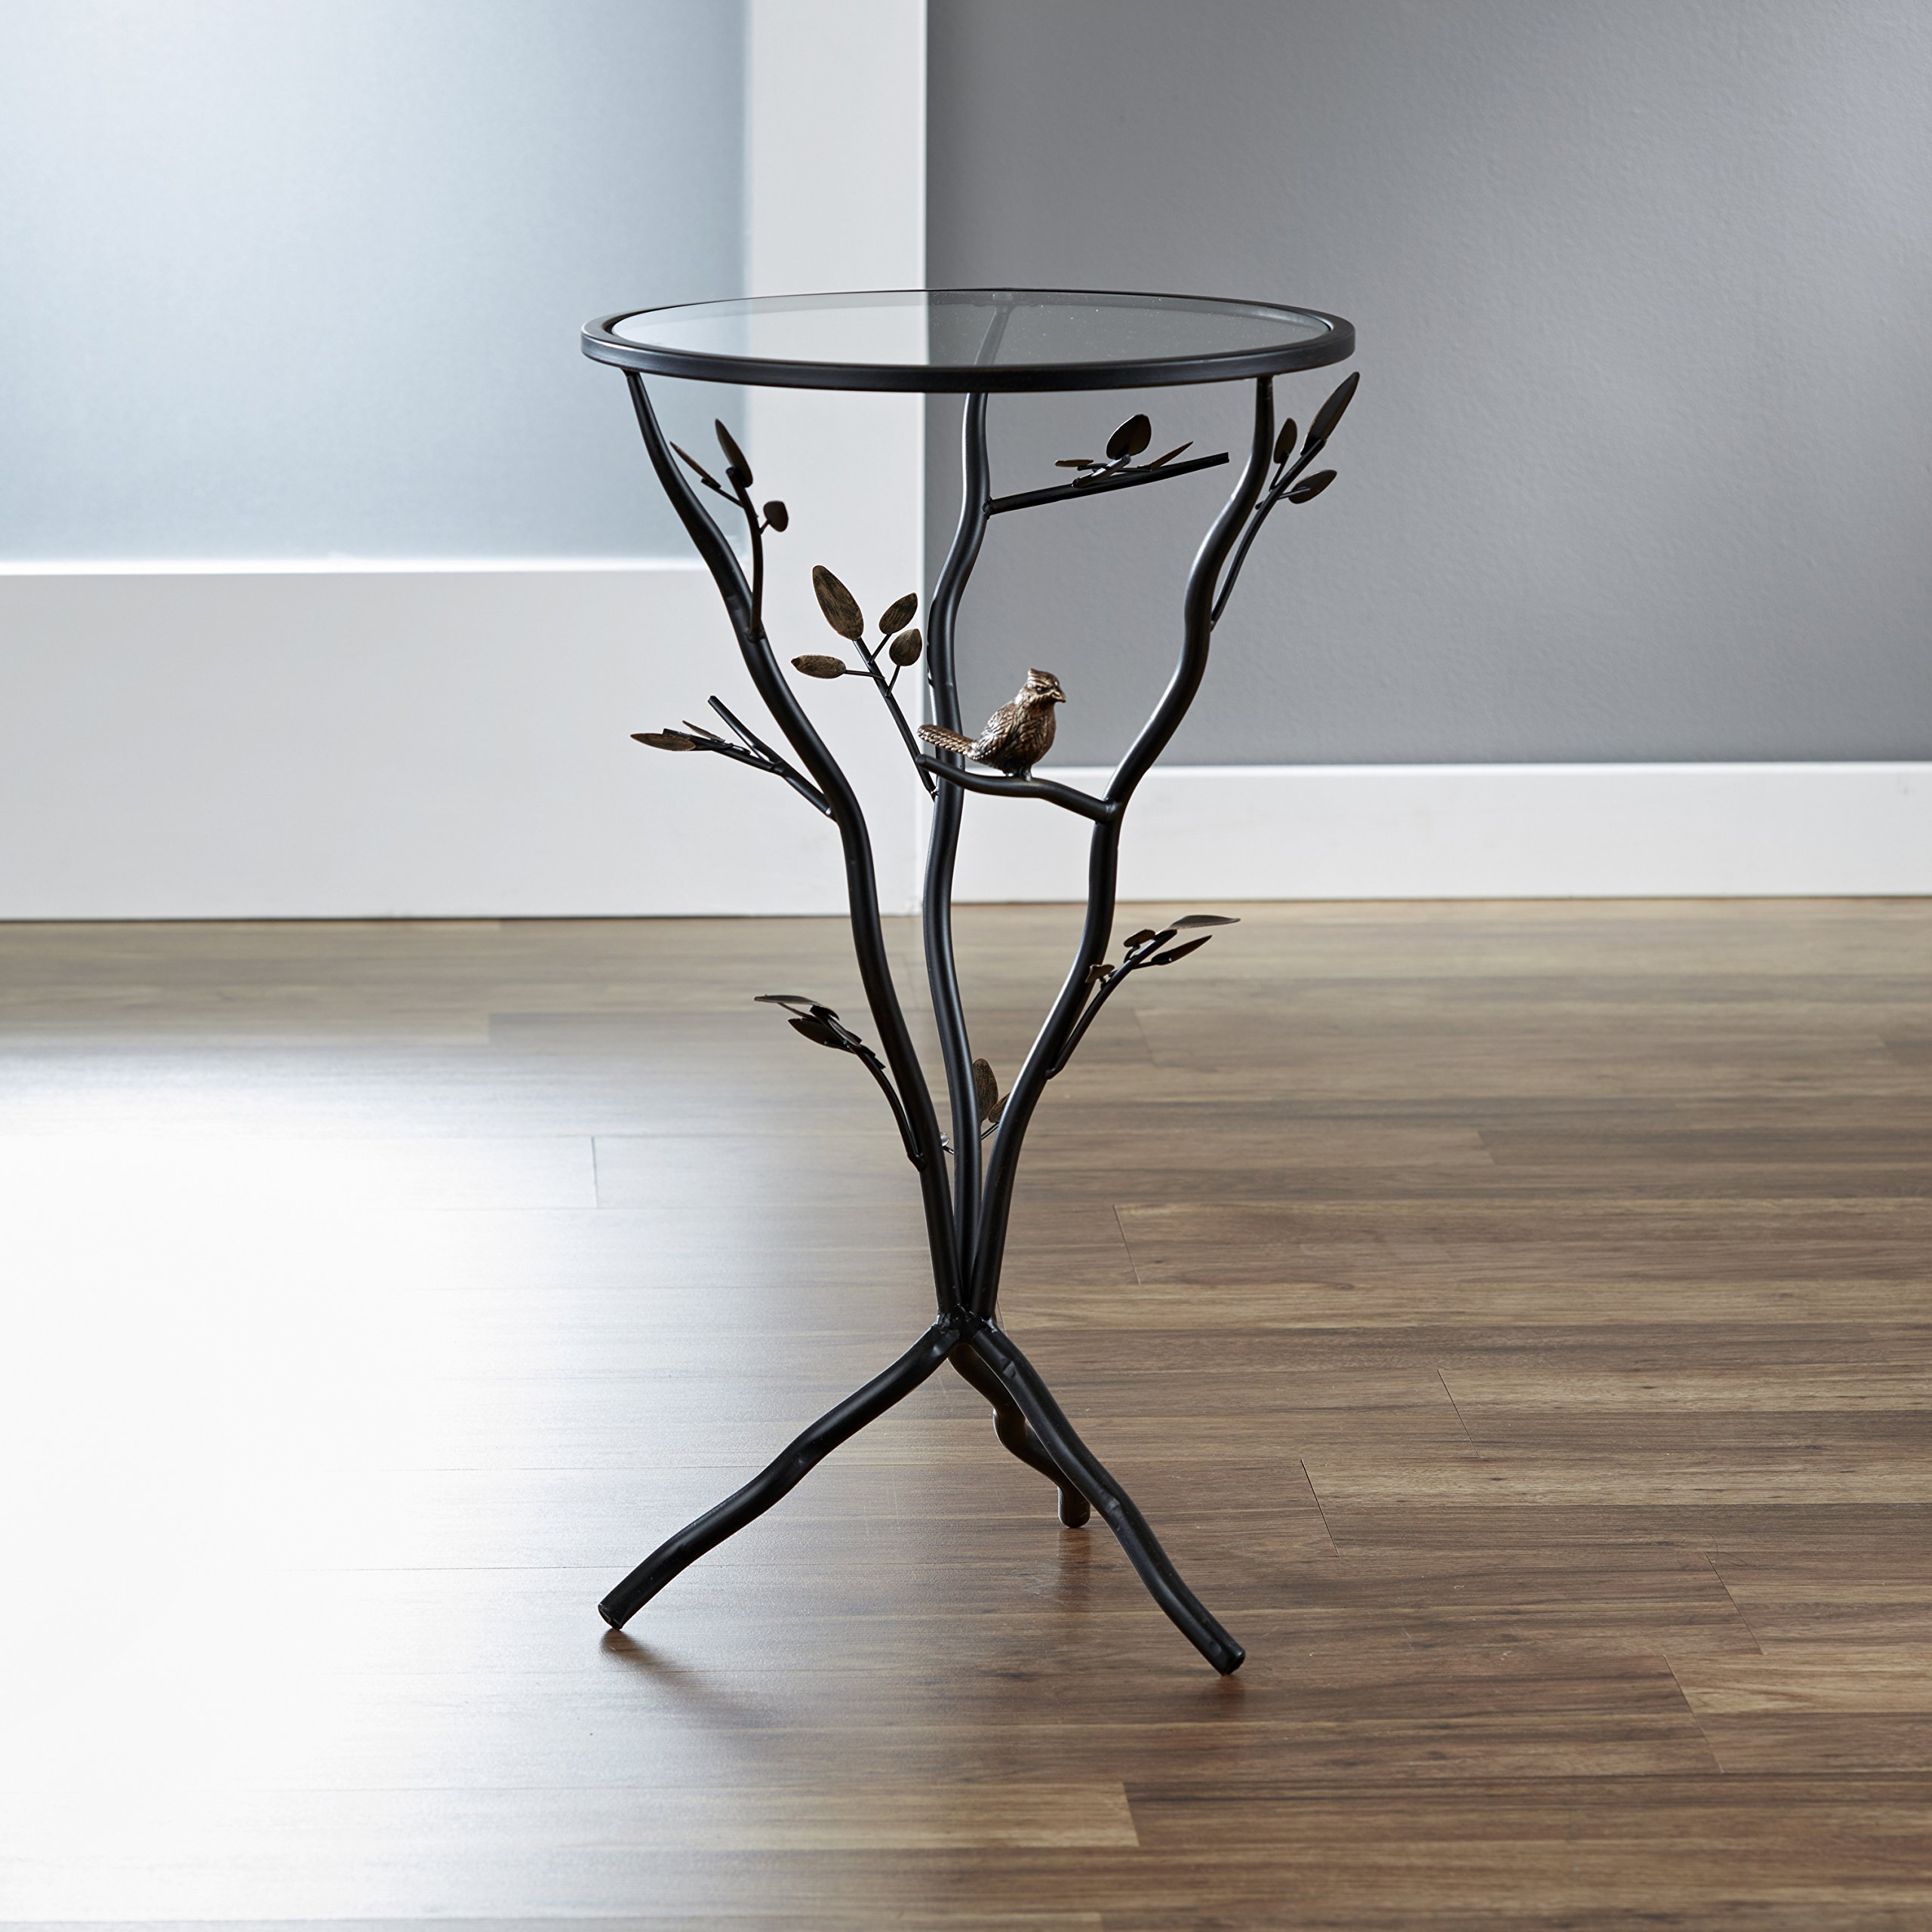 FirsTime & Co. Aged Bronze Bird and Branches Tripod Side Glass Tabletop Accent Table, 24'' H x 14'' W x 14'' D by FirsTime & Co.